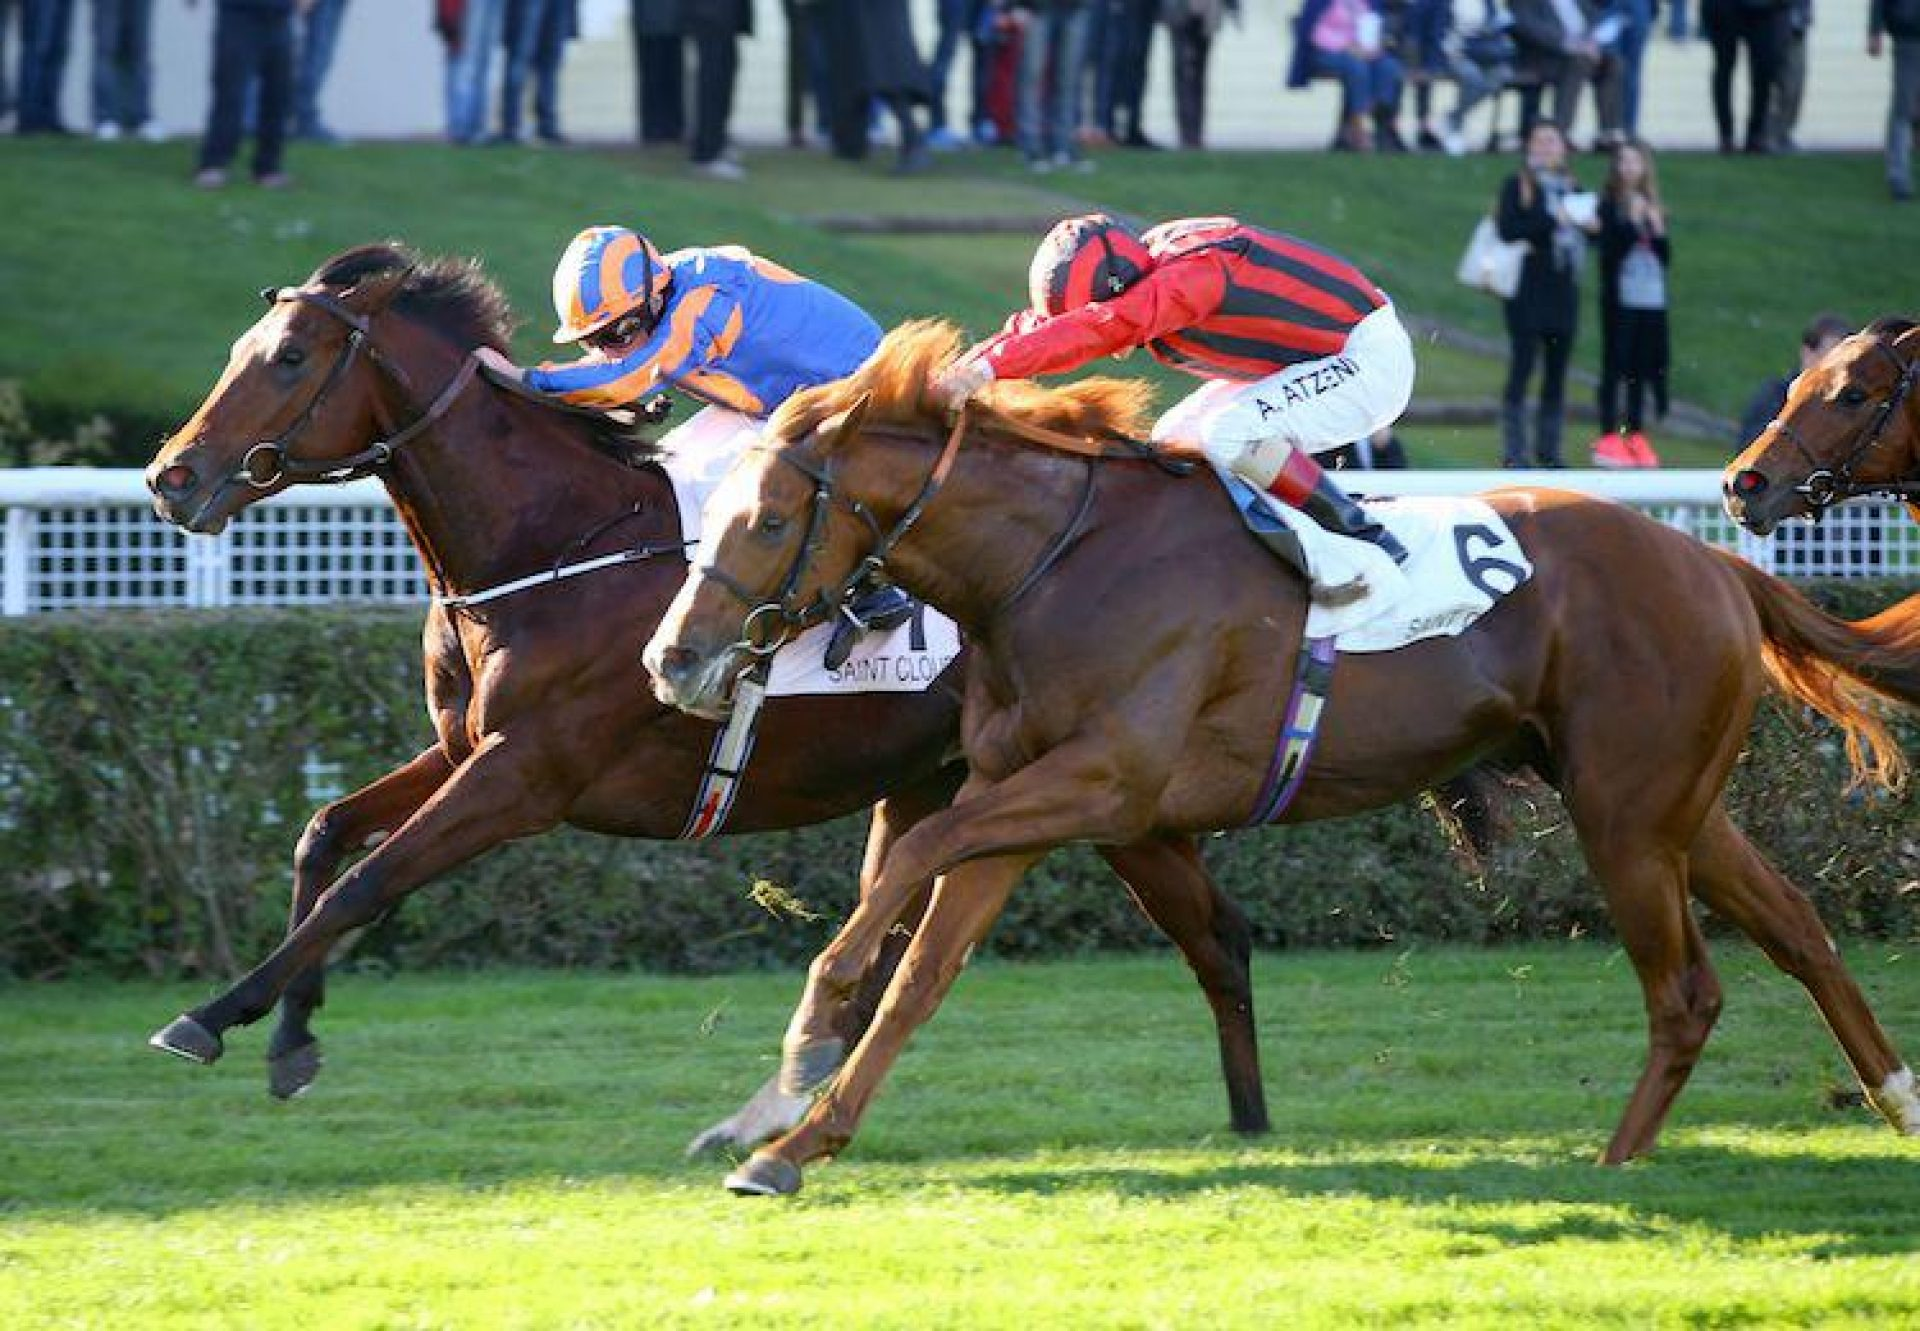 Johannes Vermeer (Galileo) winning the G1 Criterium International at Saint-Cloud